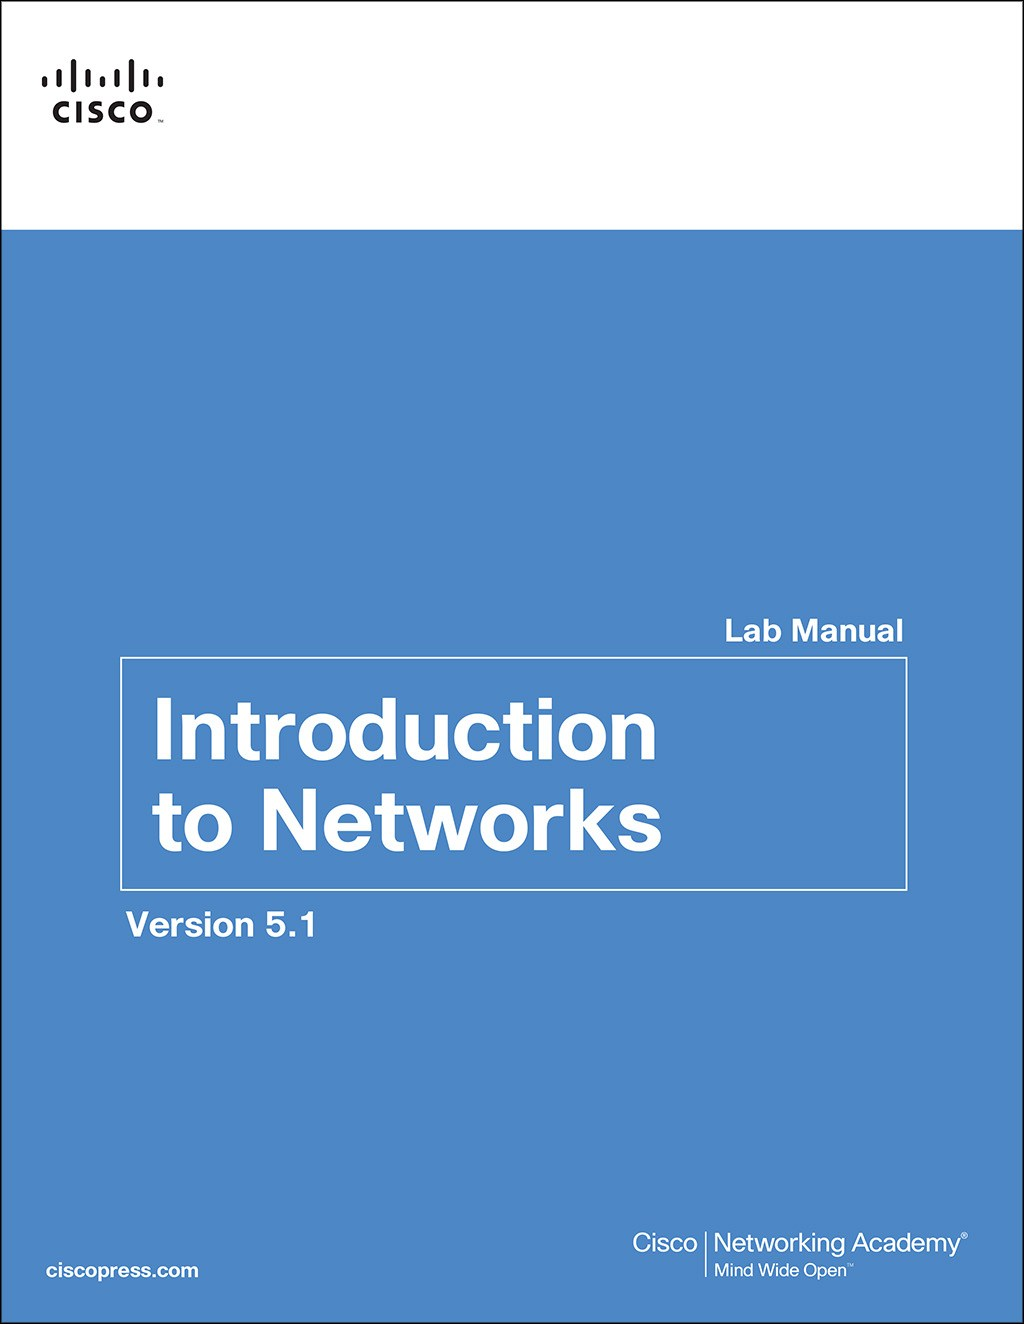 Introduction to Networks Lab Manual v5.1